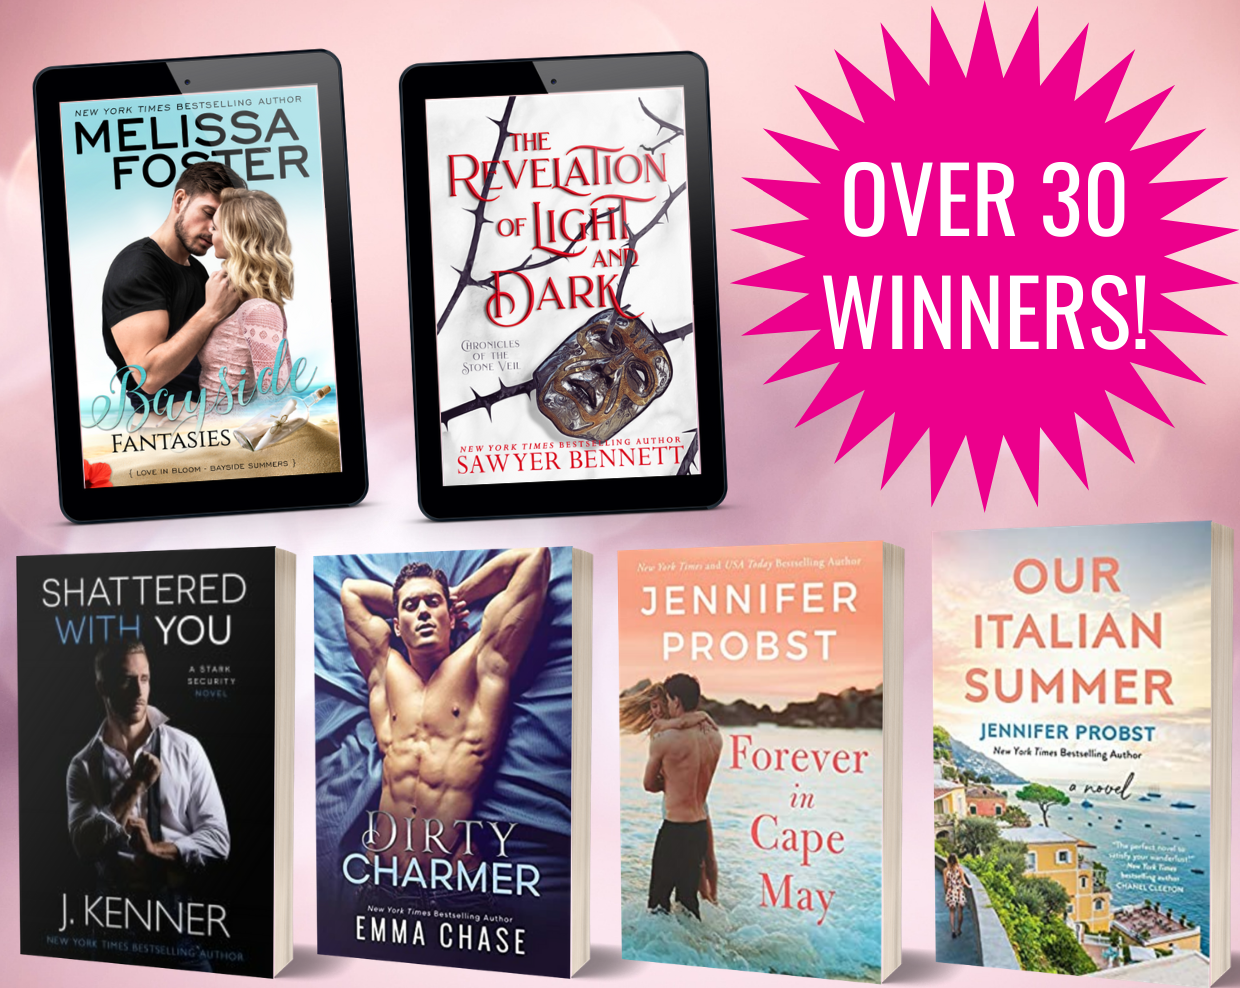 images of the winning books in the LWW giveaway!